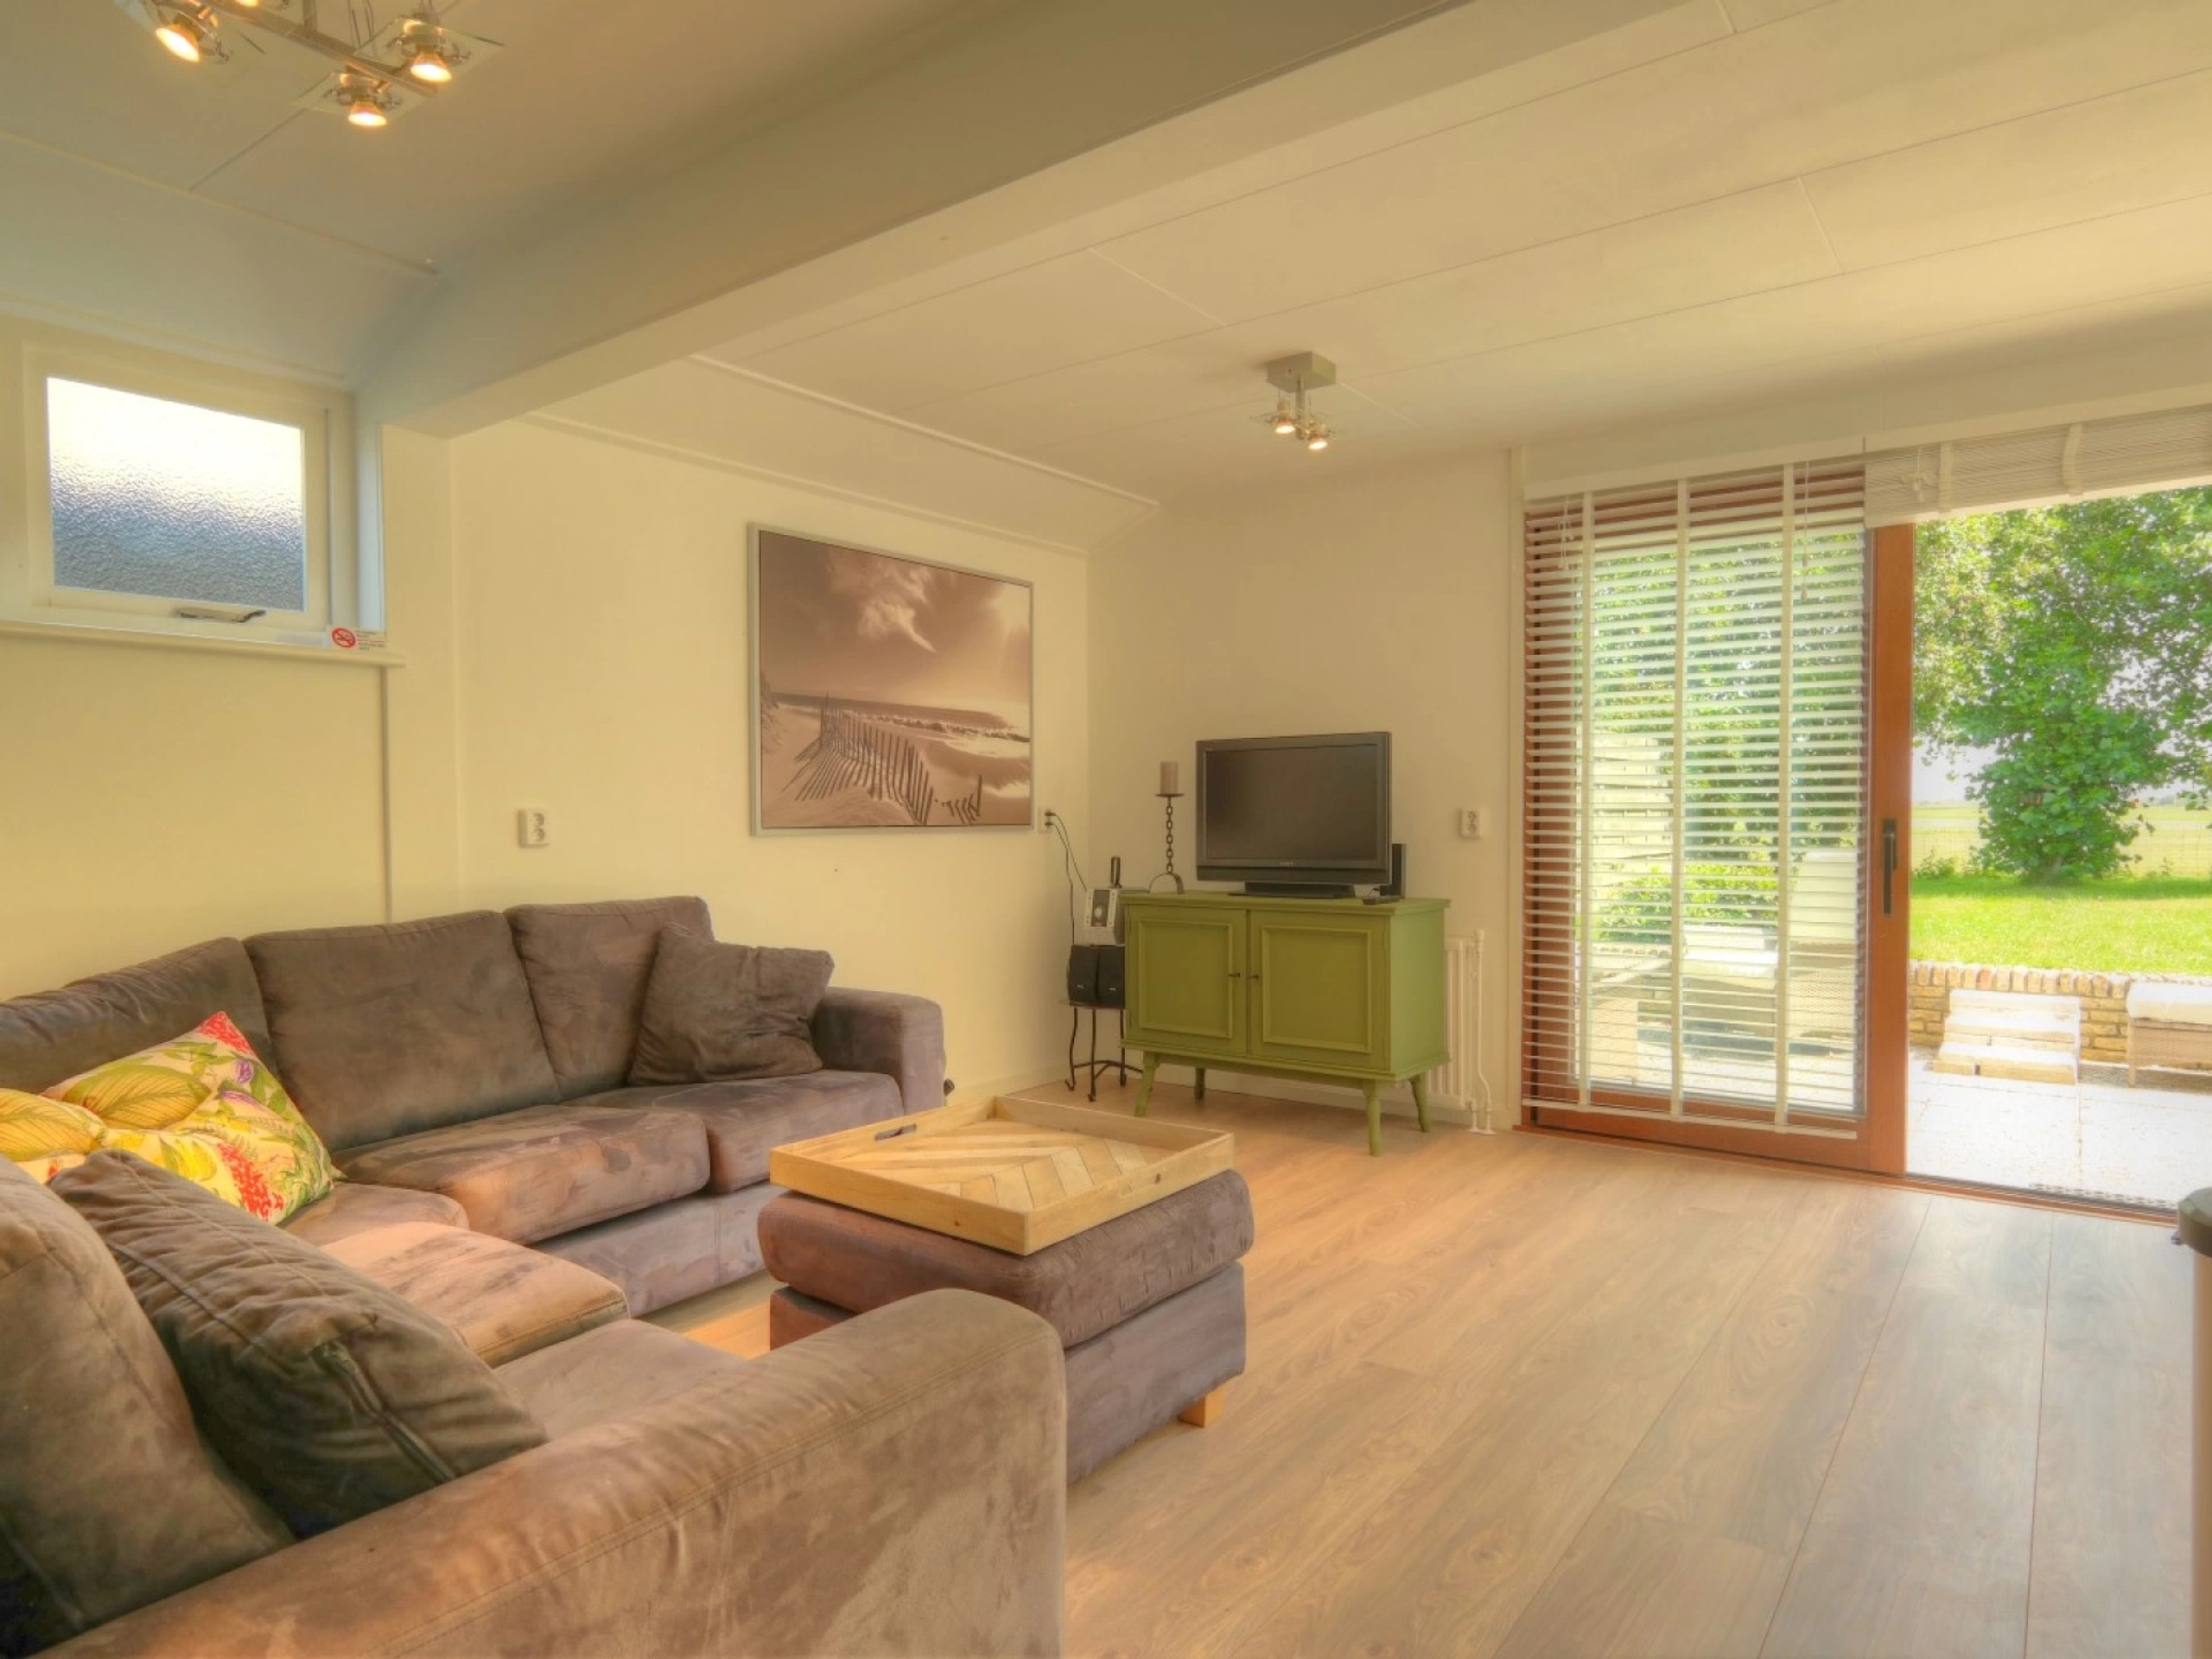 Detached holiday home with enclosed garden near Den Hoorn